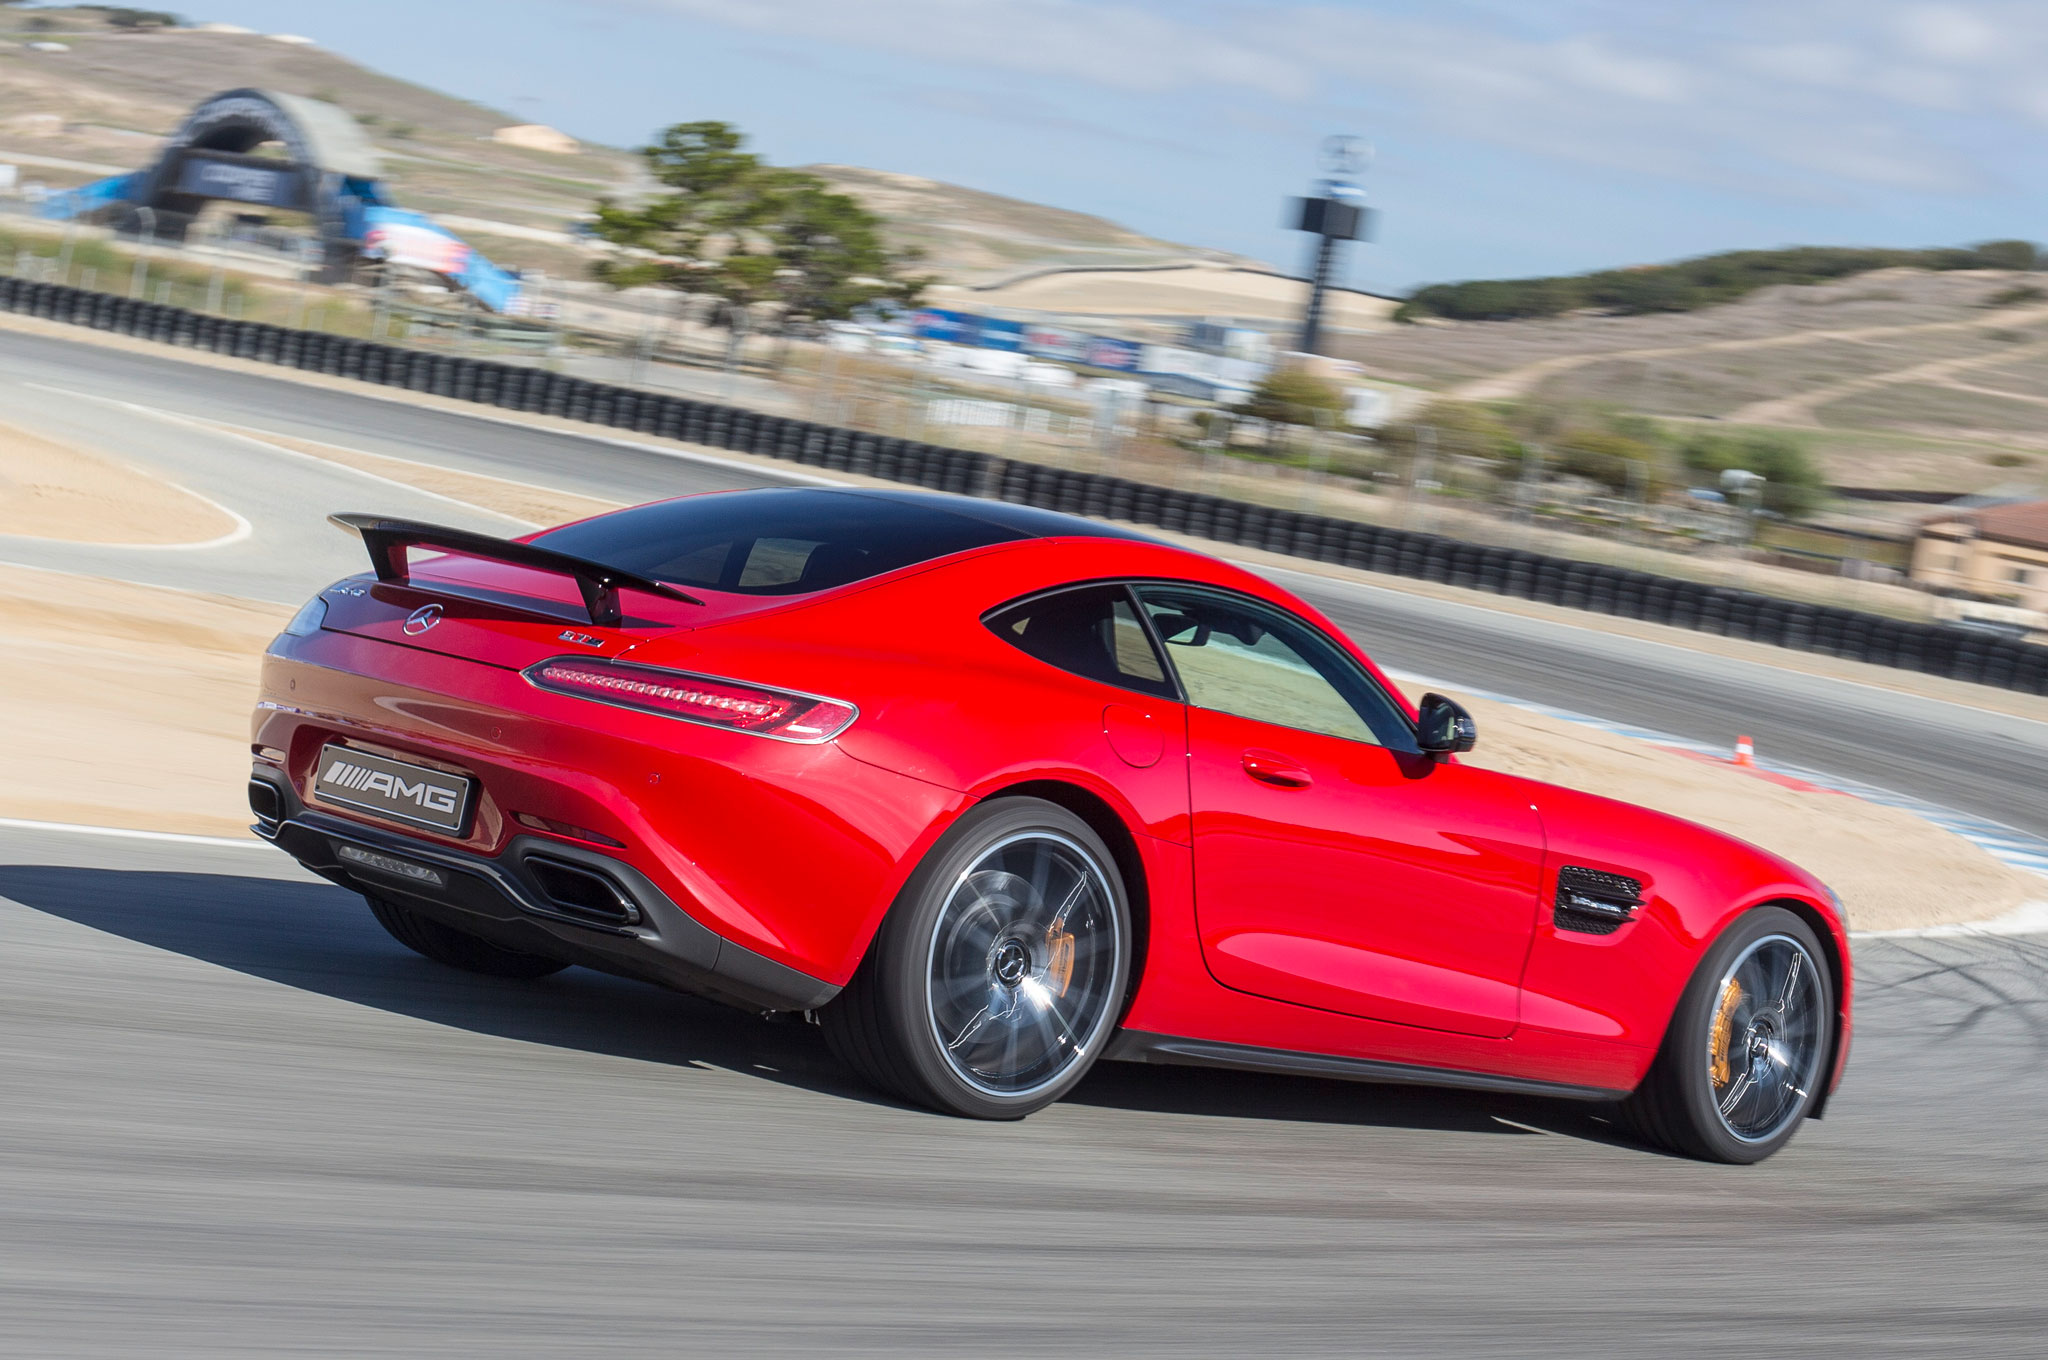 http://st.automobilemag.com/uploads/sites/11/2014/11/2016-Mercedes-AMG-GT-S-Edition-1-rear-three-quarter-in-motion-5.JPG.jpg